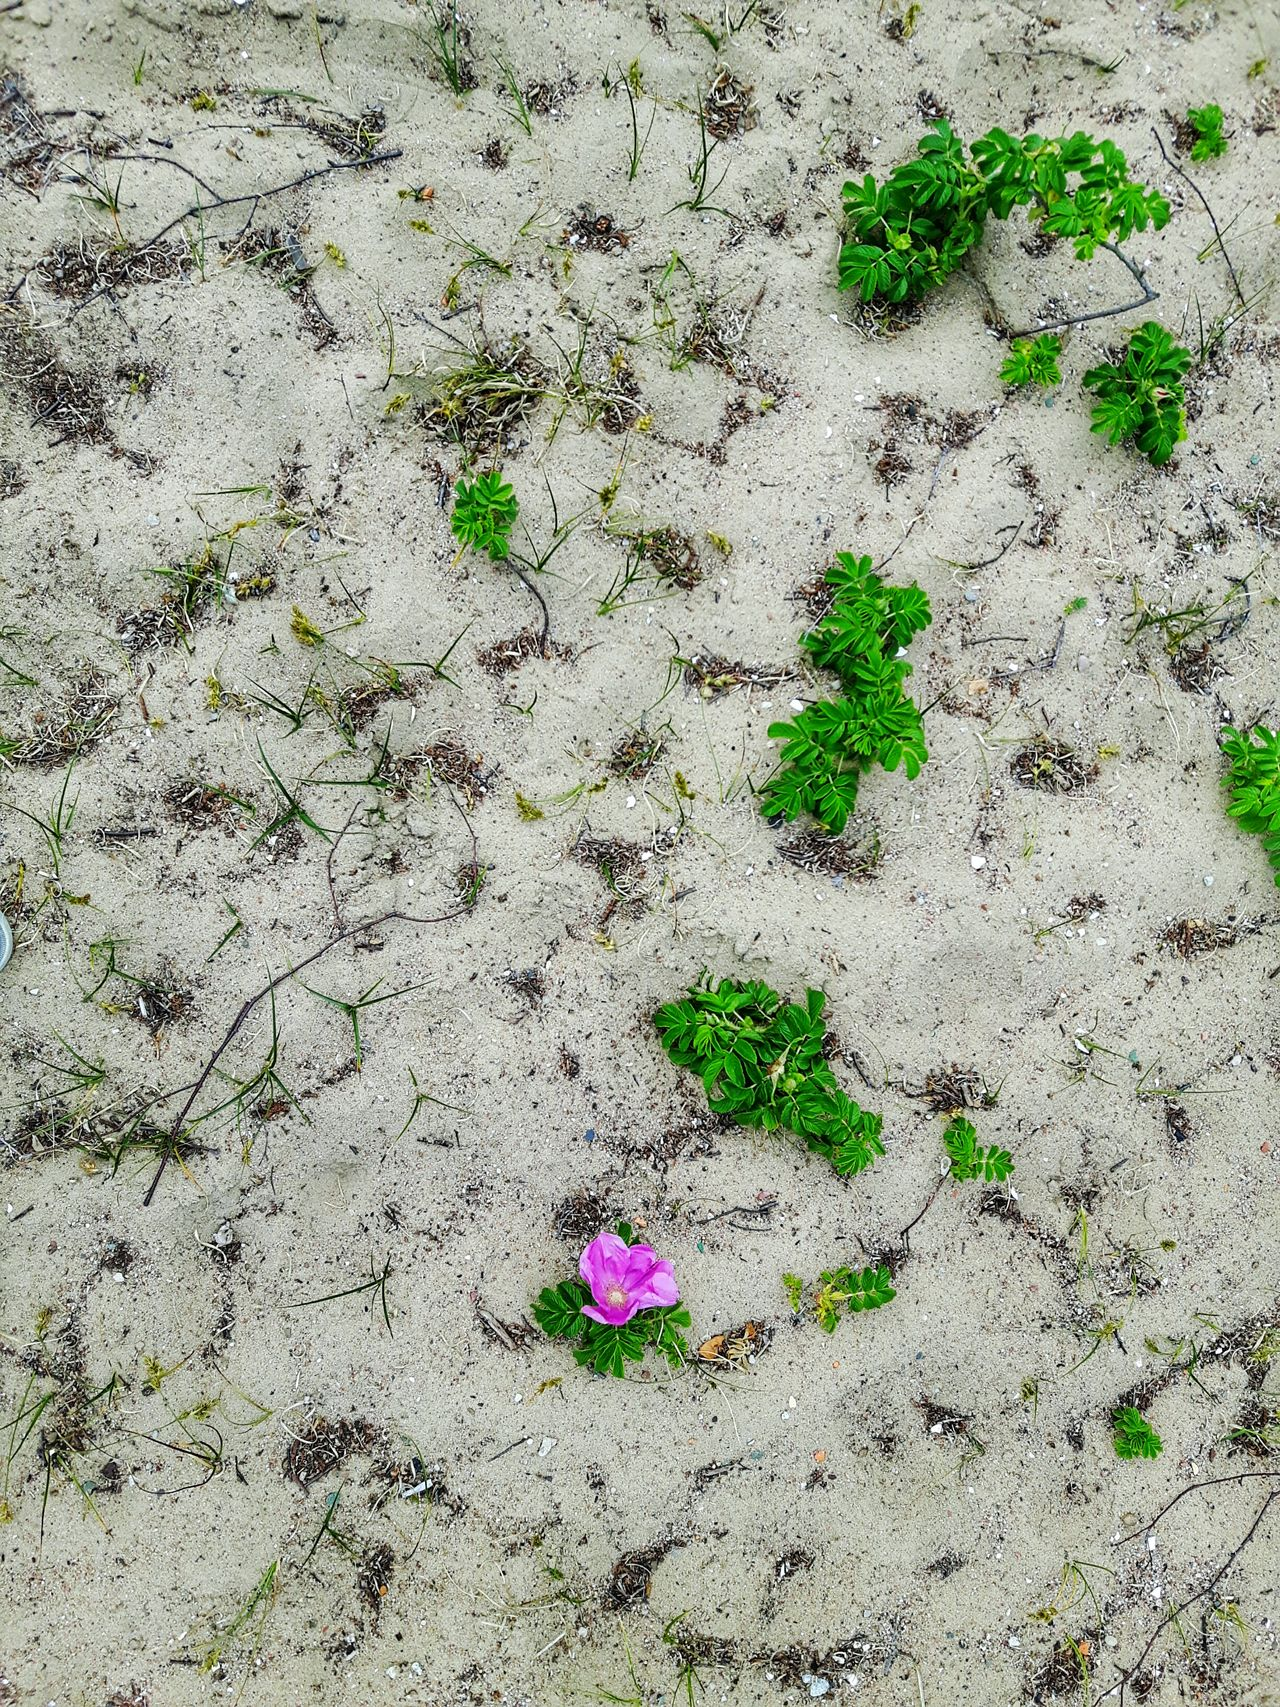 Flower on a beach Sand Beach Day No People Outdoors Nature Close-up Flower On Sand Petal Flower Petal Sand Flowers Blossomed